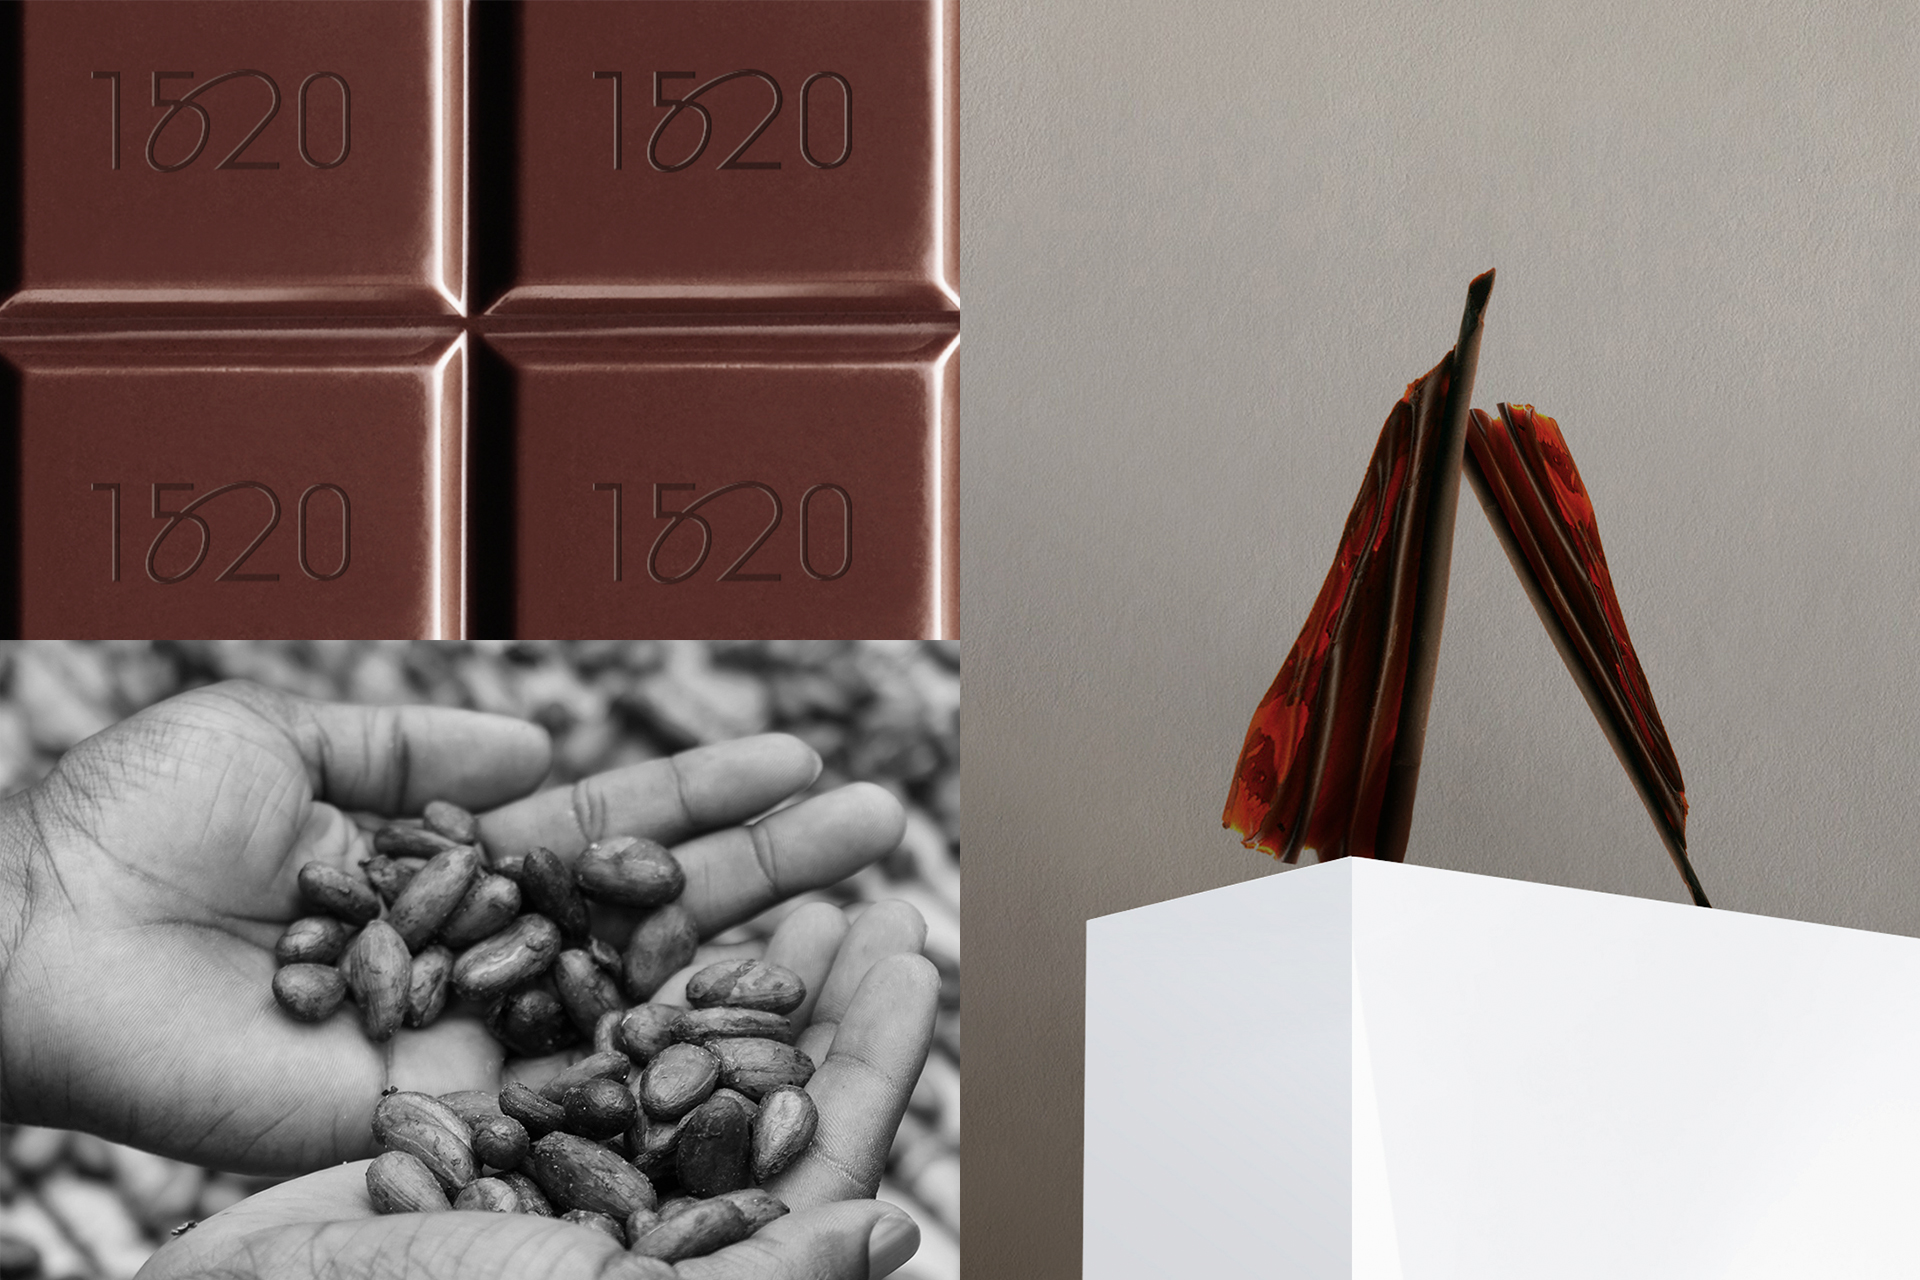 1520 Organic Chocolate, Branding & Packaging by Silenceworks - Creative Work - $i